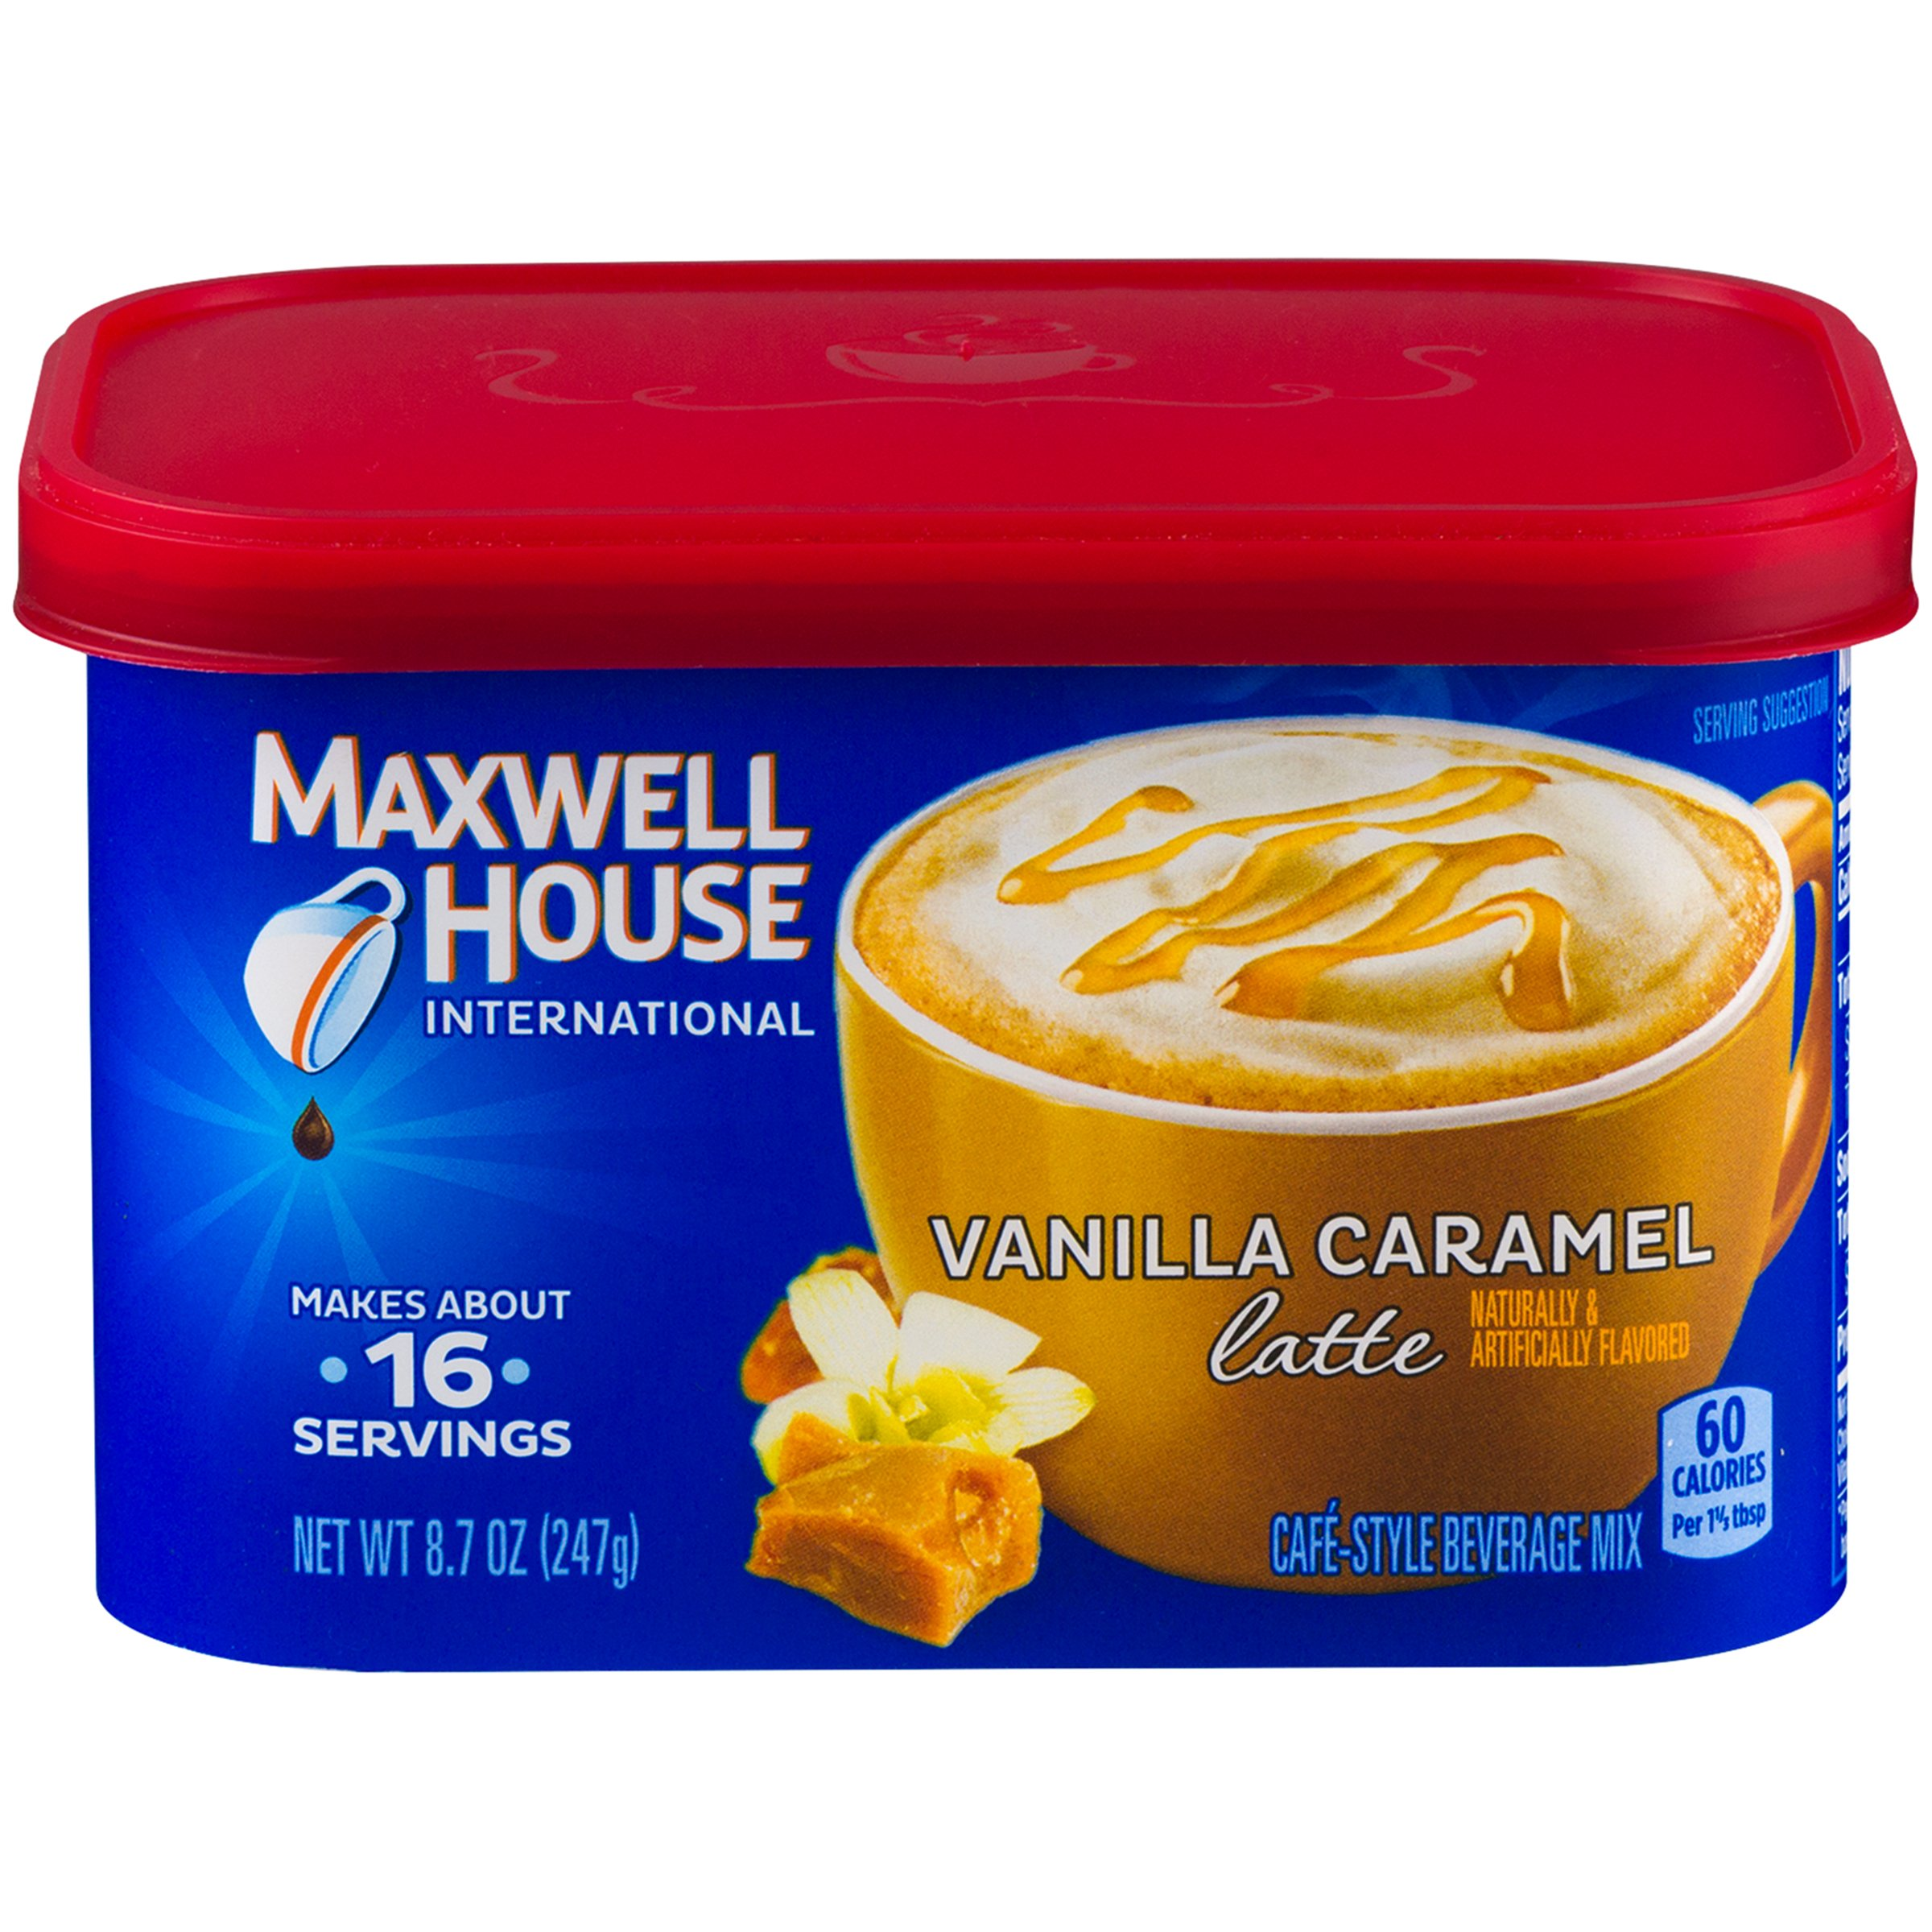 Maxwell House International Cafe Vanilla Caramel Latte (8.7 oz Canisters, Pack of 4) by MAXWELL HOUSE